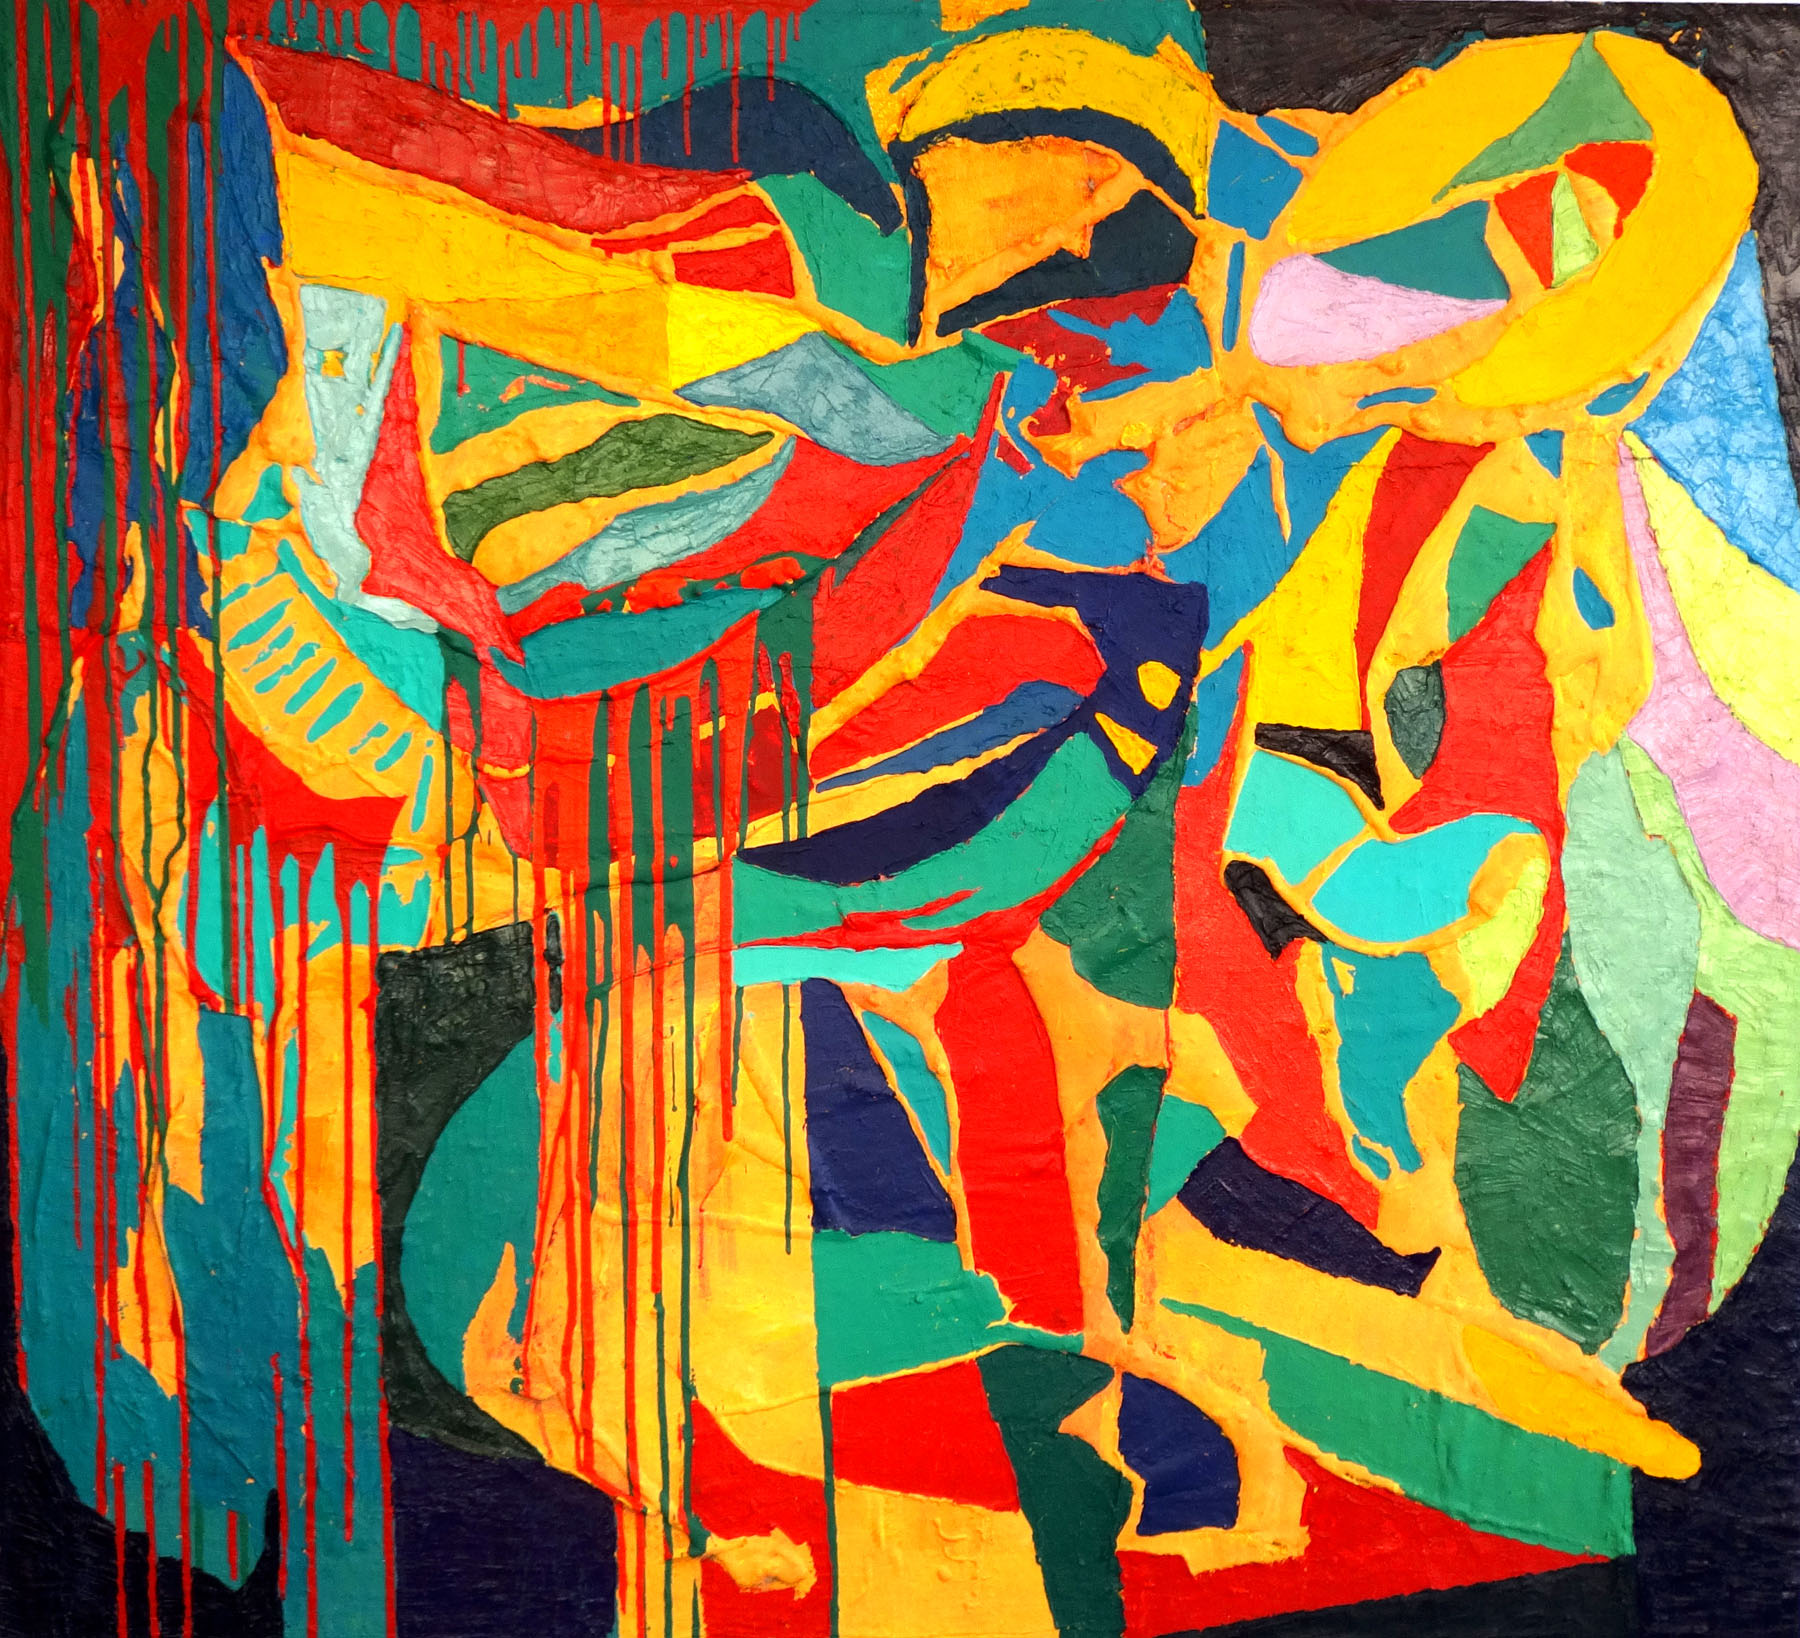 2014 Bull and Matador, 150_165 cm oil, acrylic, canvas, located in estonia